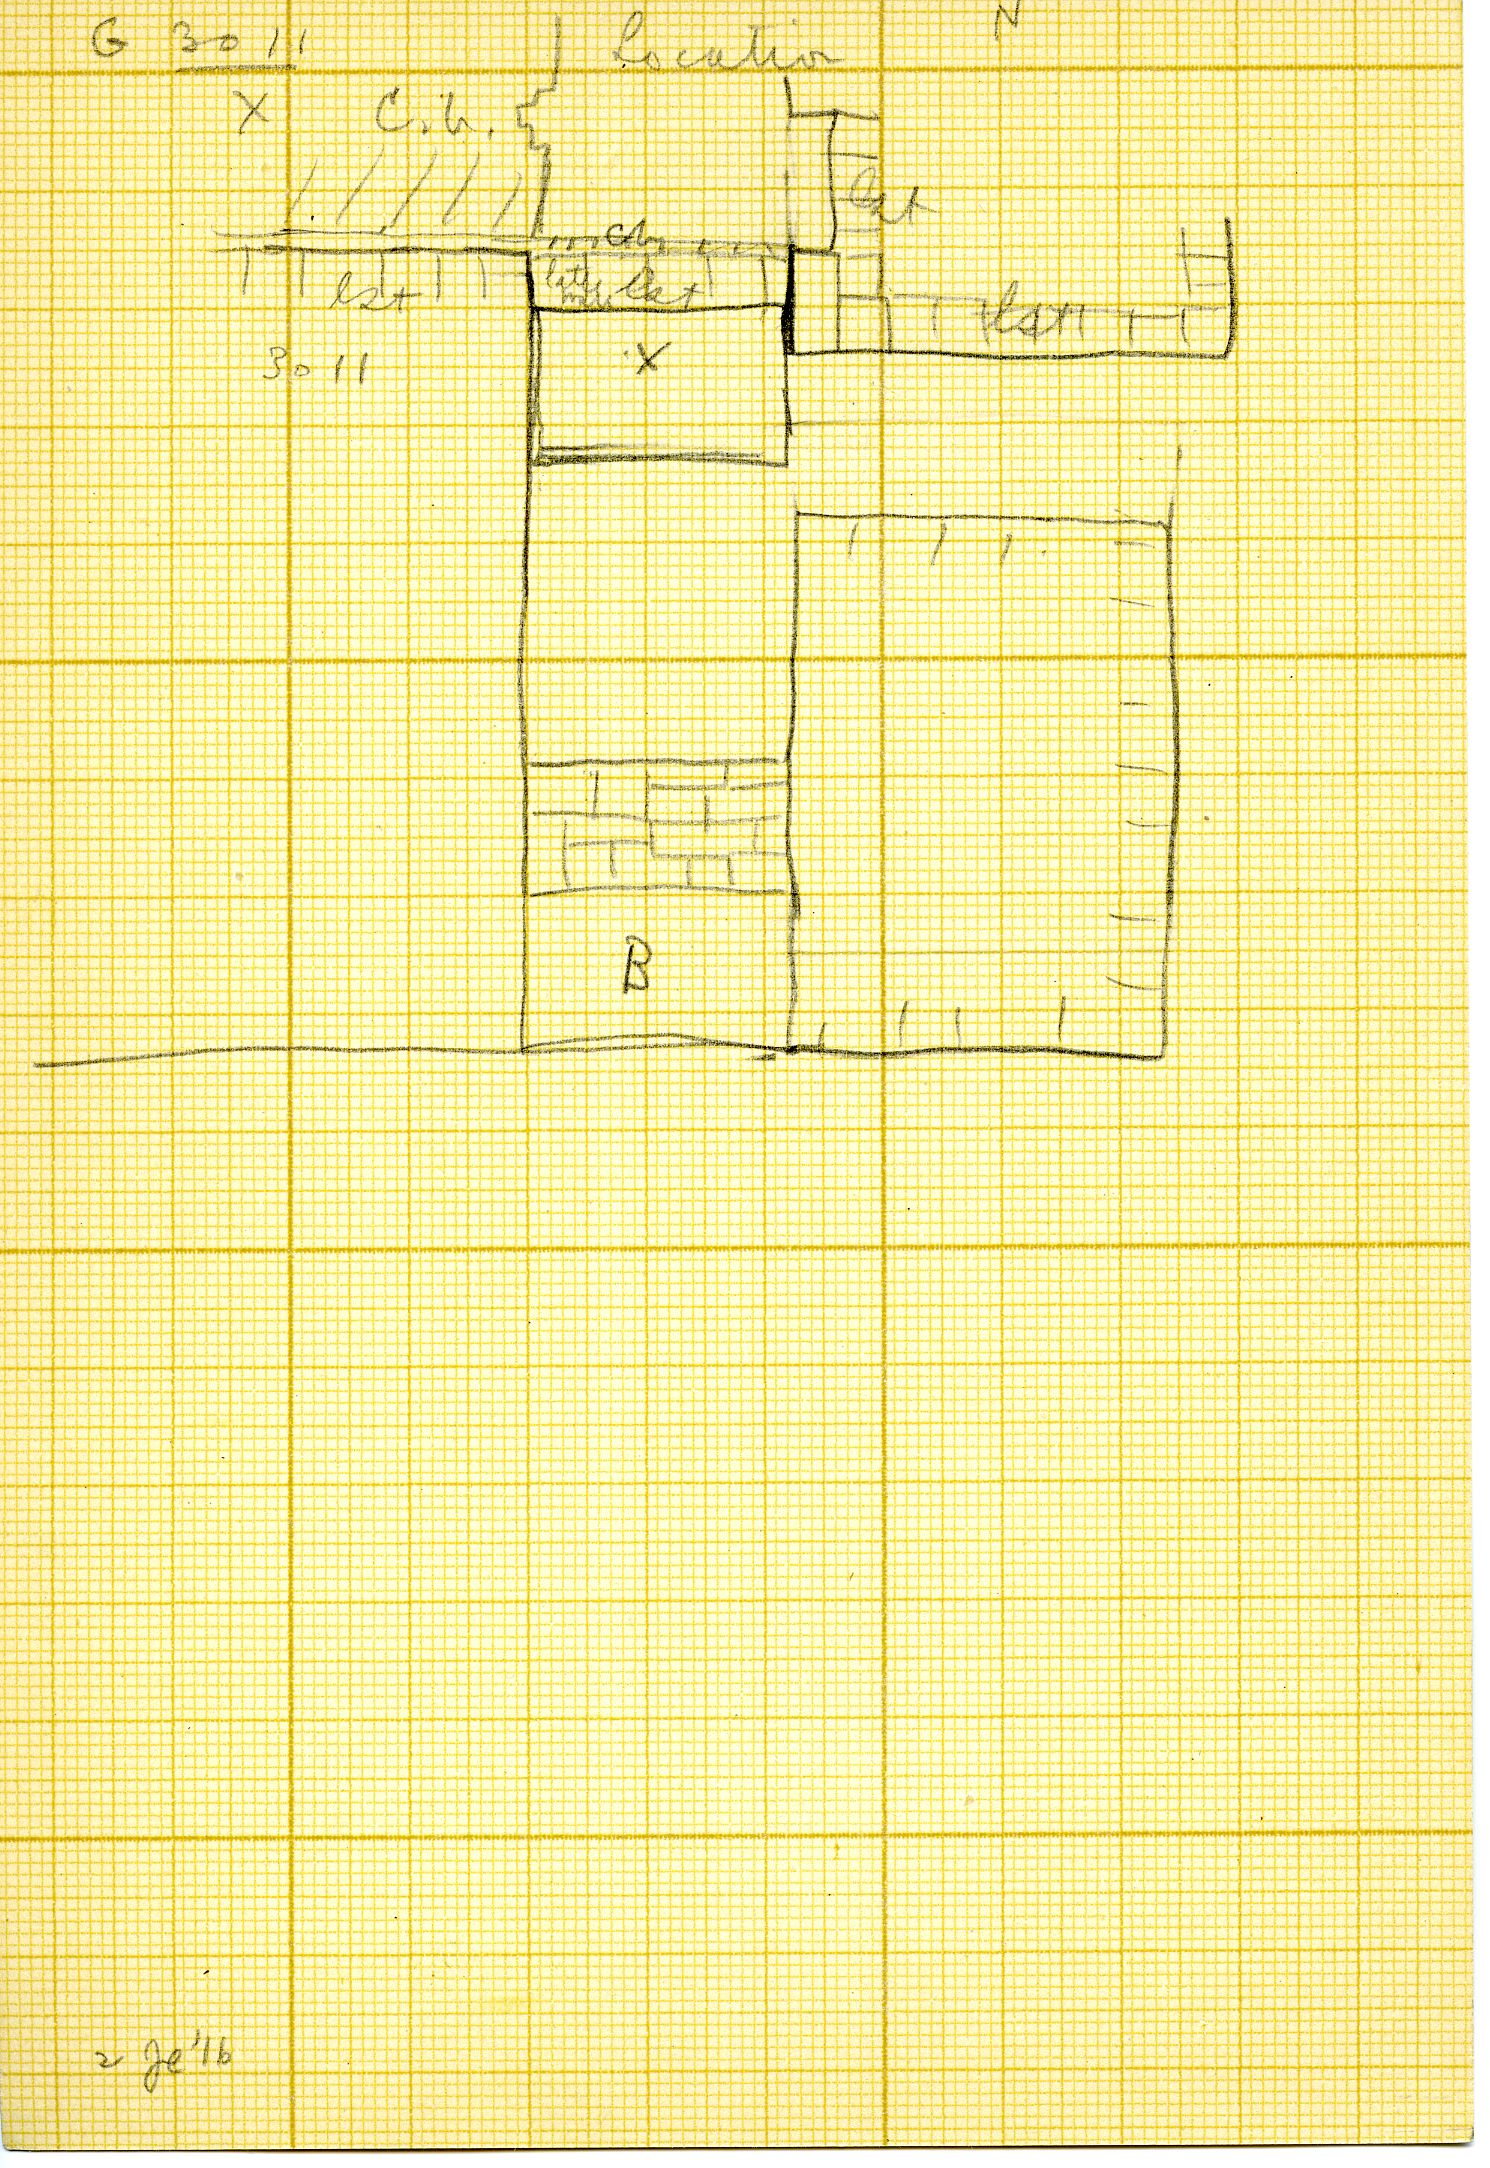 Maps and plans: G 3011, Plan